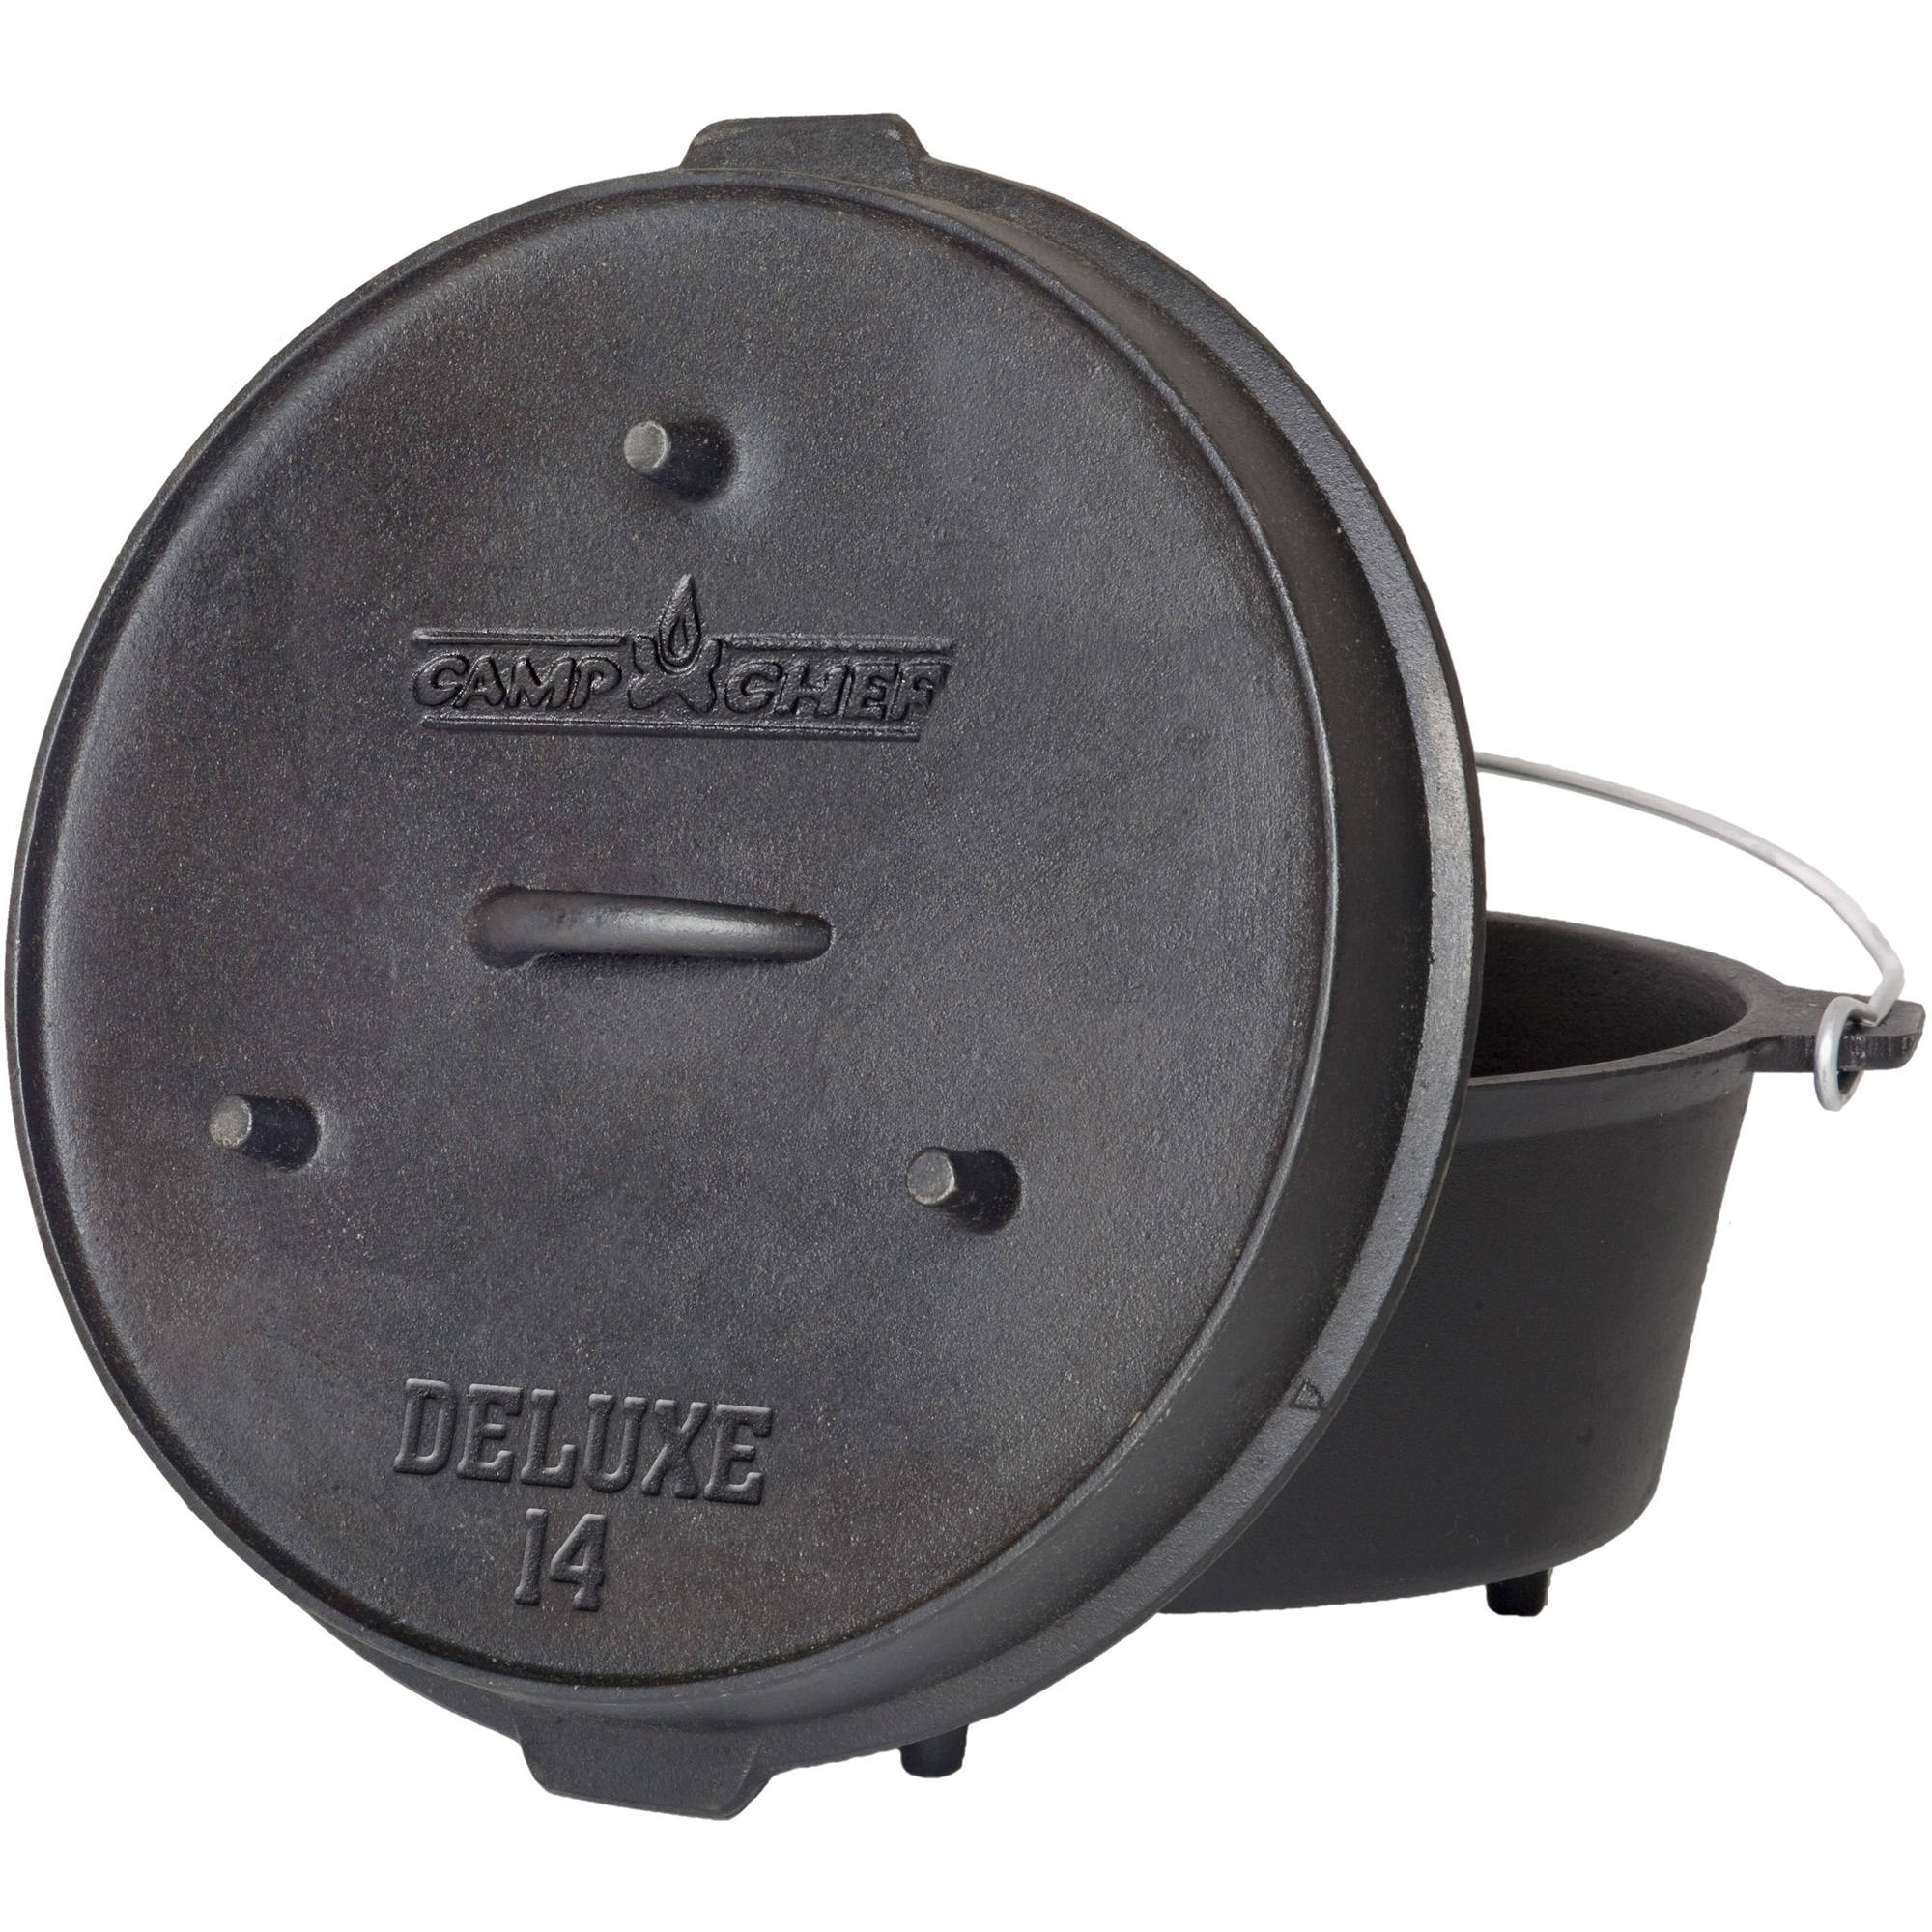 Camp Chef Pre-Seasoned 12-Quart Cast Iron Dutch Oven by Camp Chef